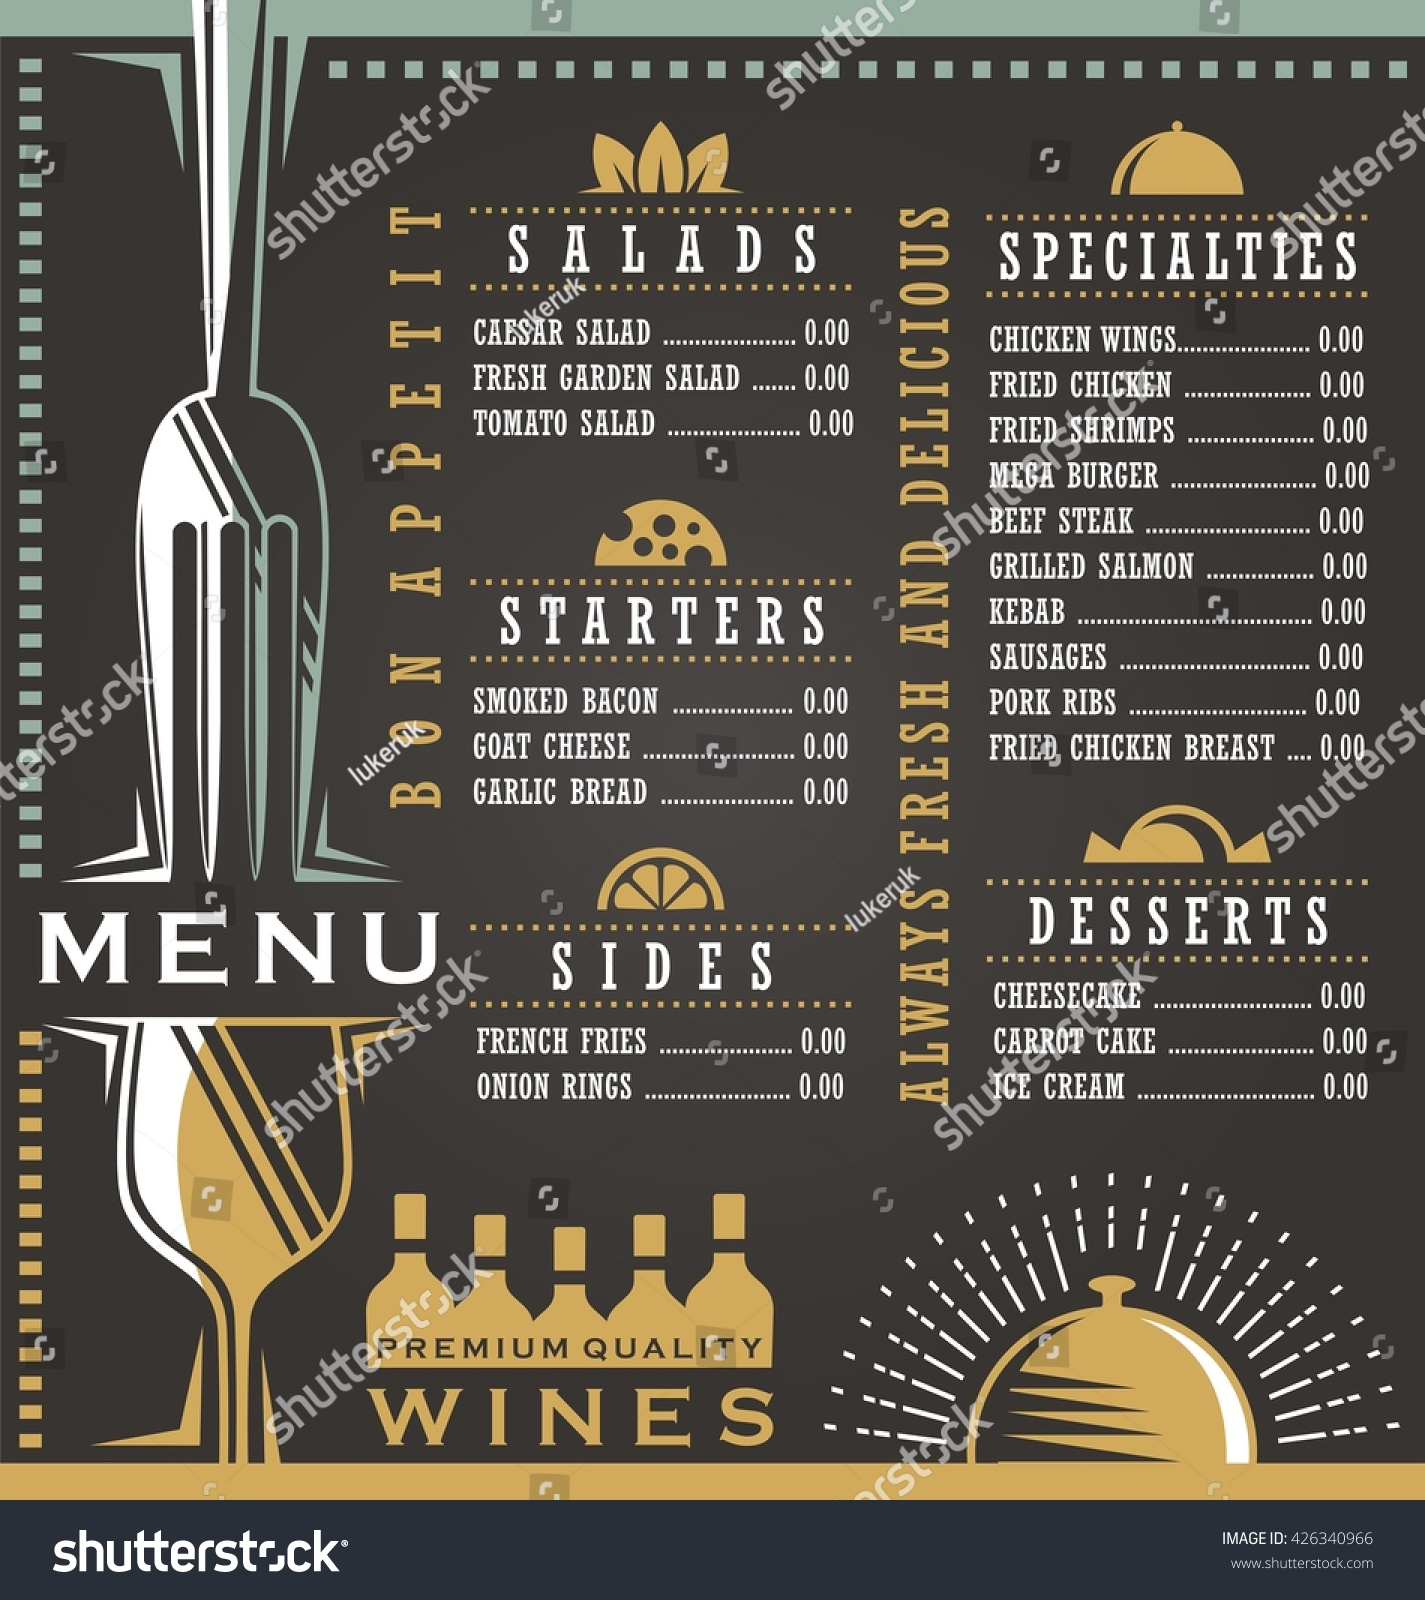 Wine food menu design concept restaurant stock vector